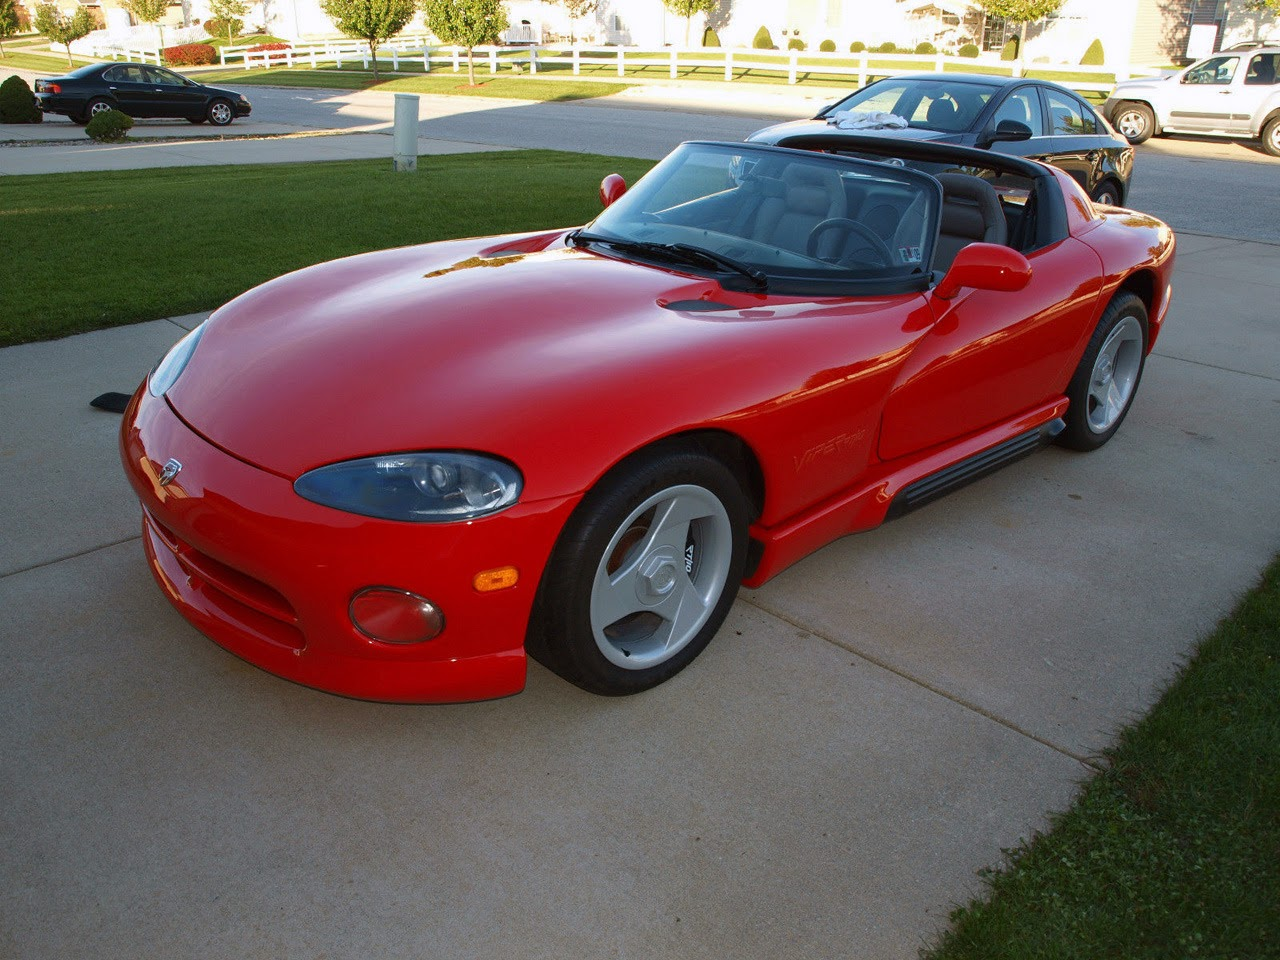 1994 dodge viper rt 10 un exemplaire comme neuf sur ebay autos am ricaines blog. Black Bedroom Furniture Sets. Home Design Ideas